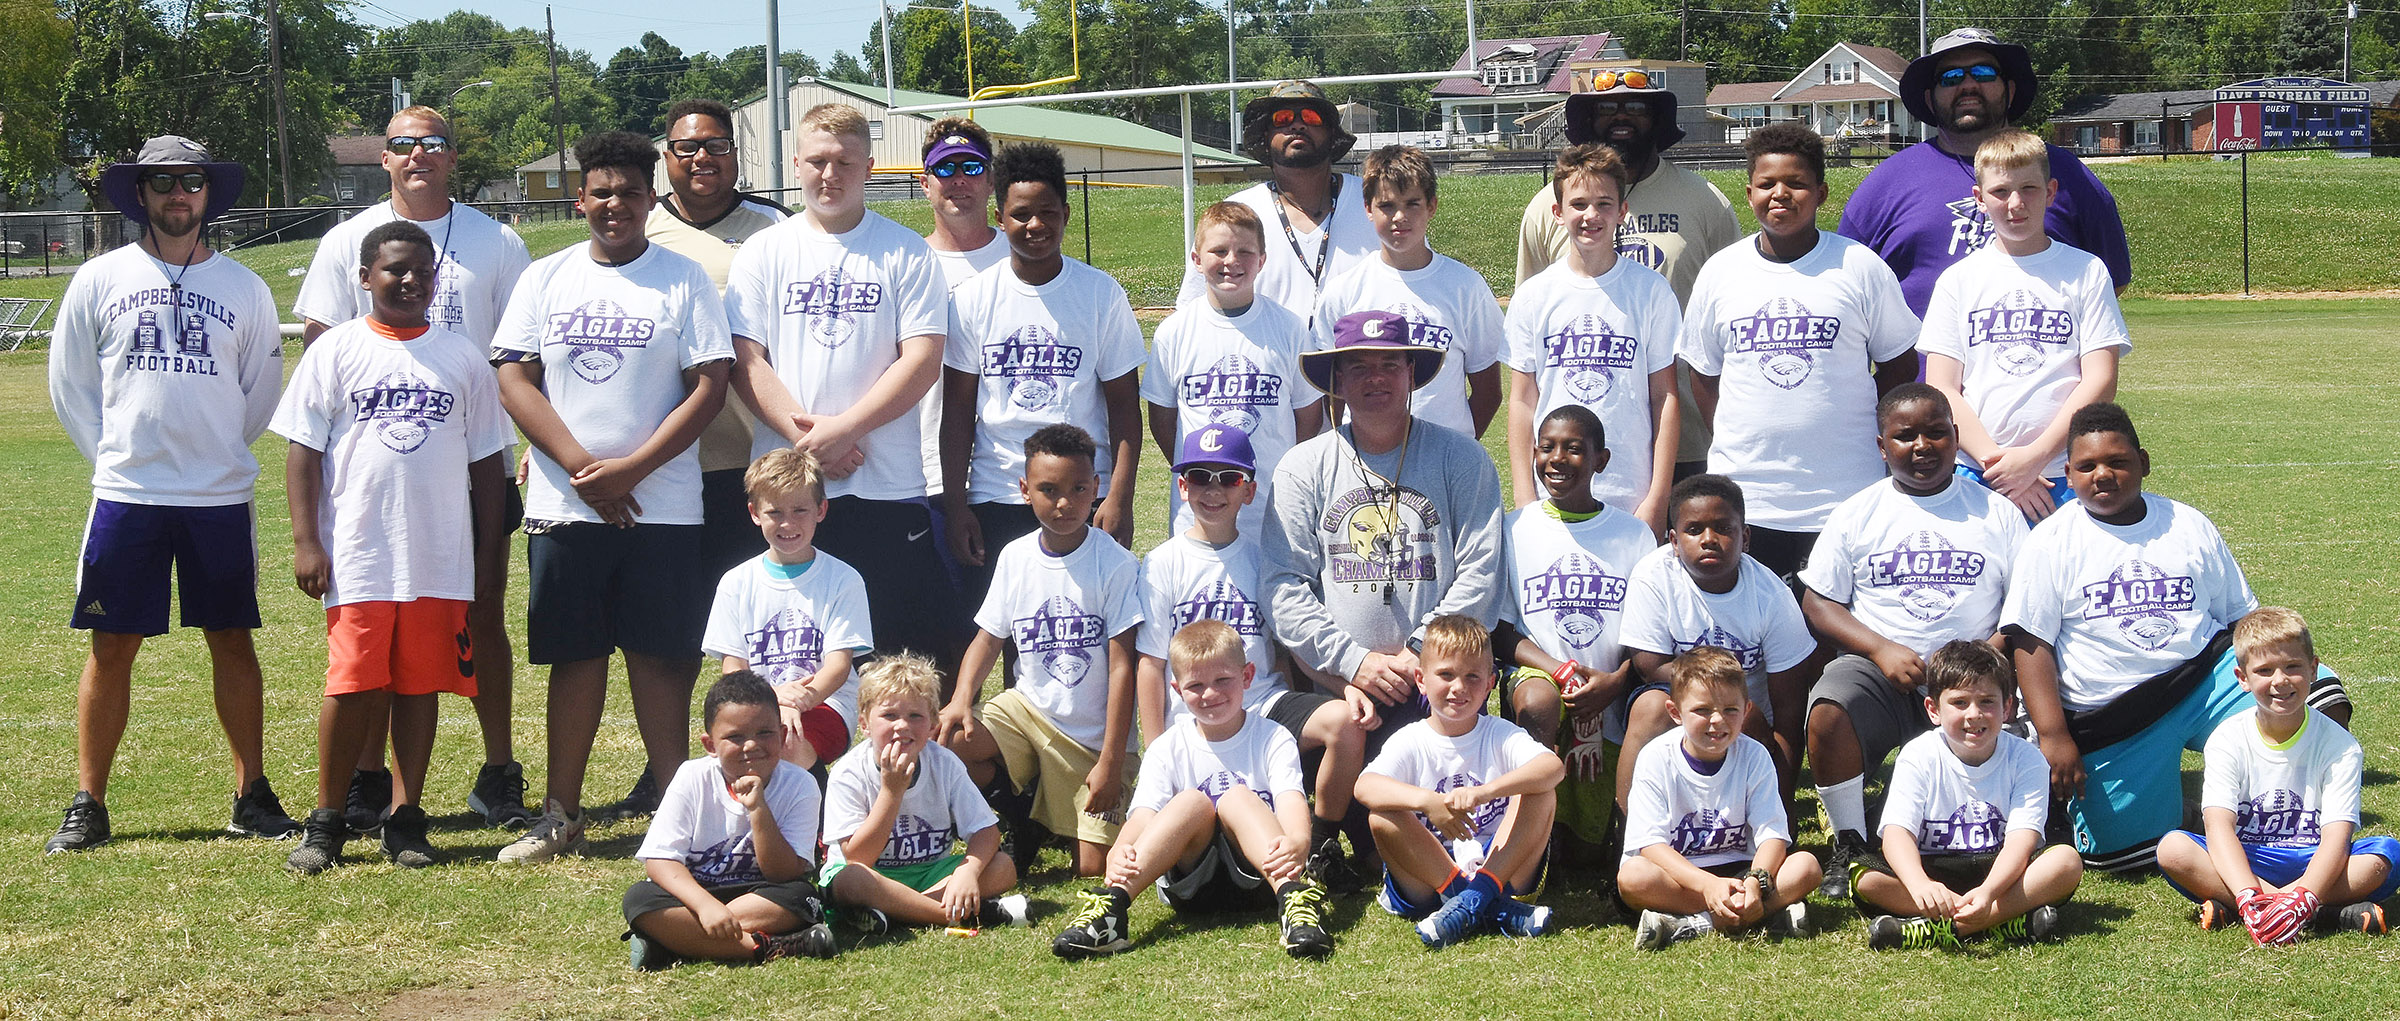 Campbellsville middle and high school football coaches hosted a youth camp recently, with about 25 participants. From left, front, are Campbellsville Elementary School first-graders Kingson Duncan and Landry Brown, Griff Thomas, Owen Smith, CES first-grader Hayden Goff, Trey Moore and Blake Absher. Second row, Campbellsville Elementary School fifth-grader Braydn Spurling, fourth-grader Maddox Hawkins, CHS head football coach Dale Estes, CES fourth-graders Jaron Johnson and Elijah Spurling, Julian Smith and CES fifth-grader Malikiah Spurling. Third row, Campbellsville Middle School sixth-grader KeKe Miller, eighth-graders J.T. Washington, Levi Dicken and Deondre Weathers, seventh-graders Junior Jeffries and Kaden Bloyd, eighth-graders Camren Vicari and Keondre Weathers and sixth-grader Kaleb Miller. Back, CHS assistant football coaches Tyler Hardy, Robbie Gribbins, Bronson Gowdy, Herb Wiseman, Aaron Webb, Will Griffin and D.J. Moore.